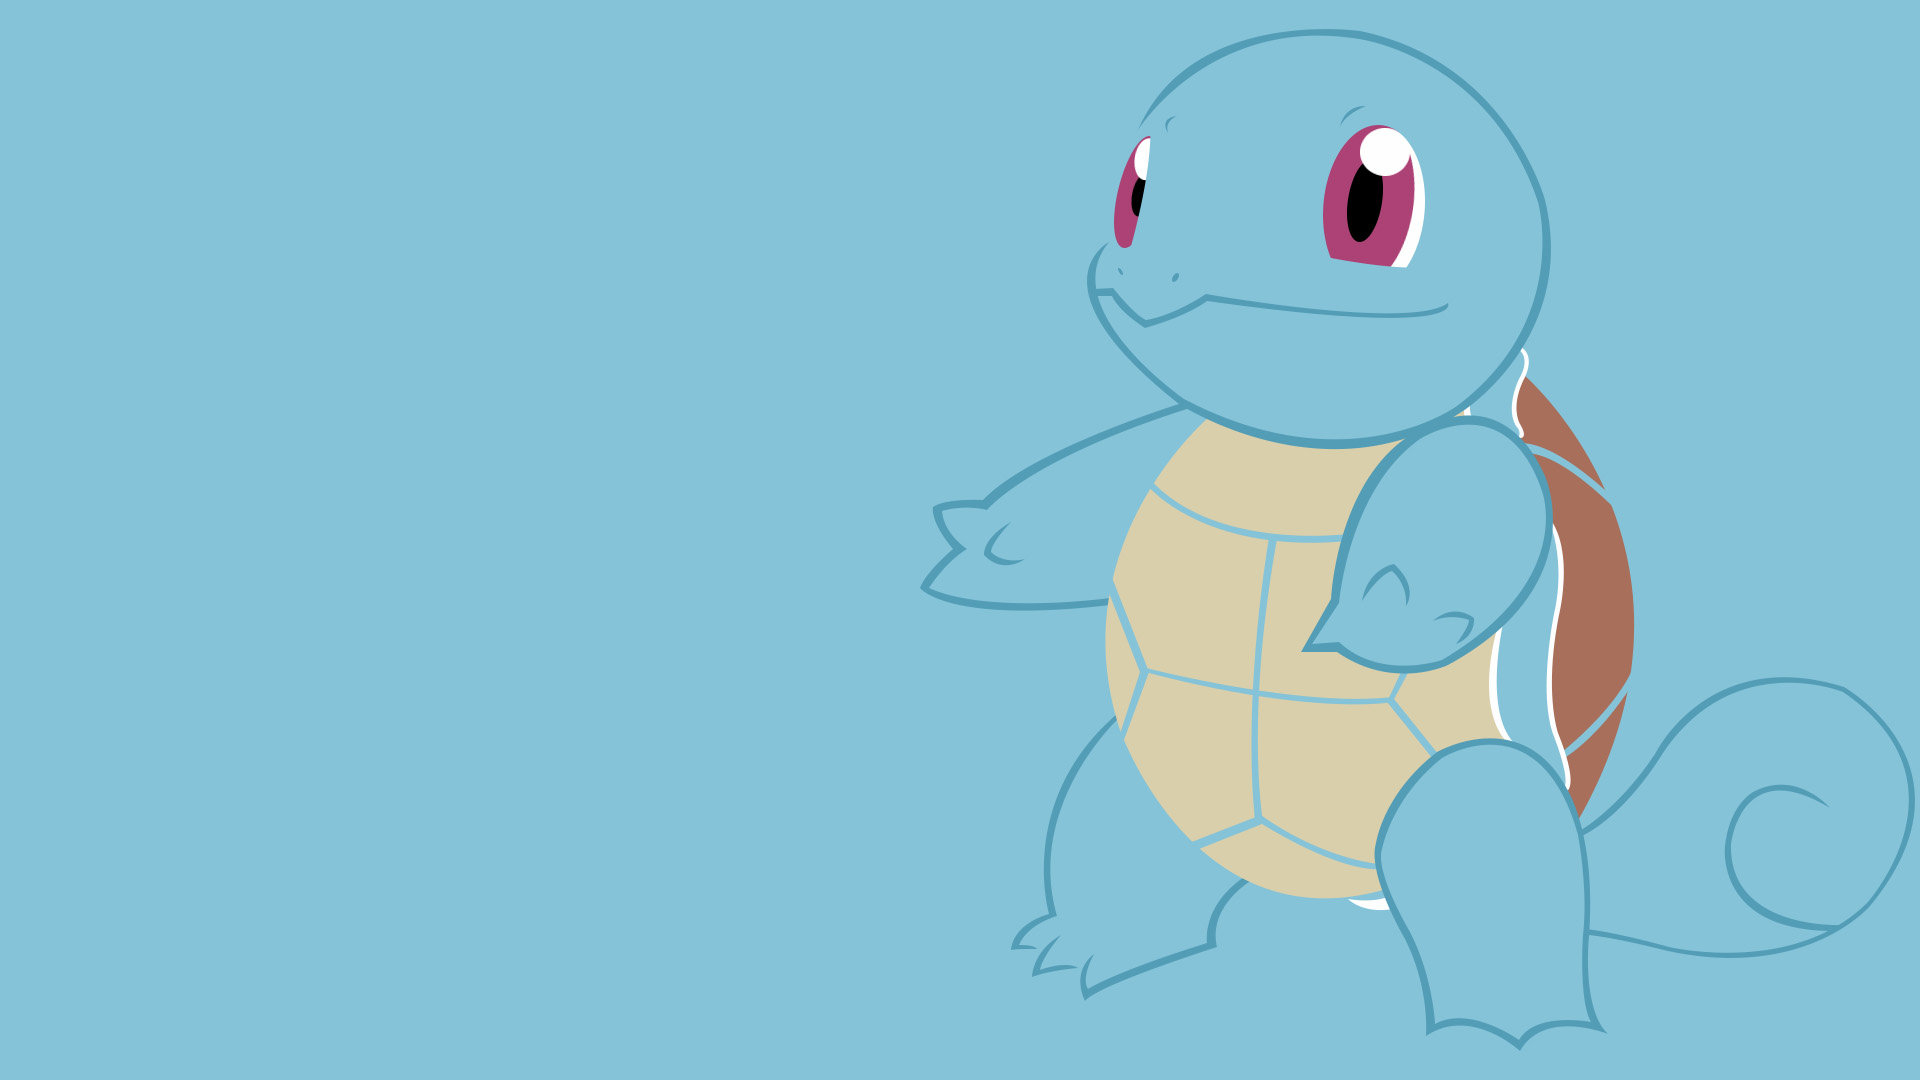 Free Squirtle (Pokemon) high quality wallpaper ID:280412 for hd 1080p computer